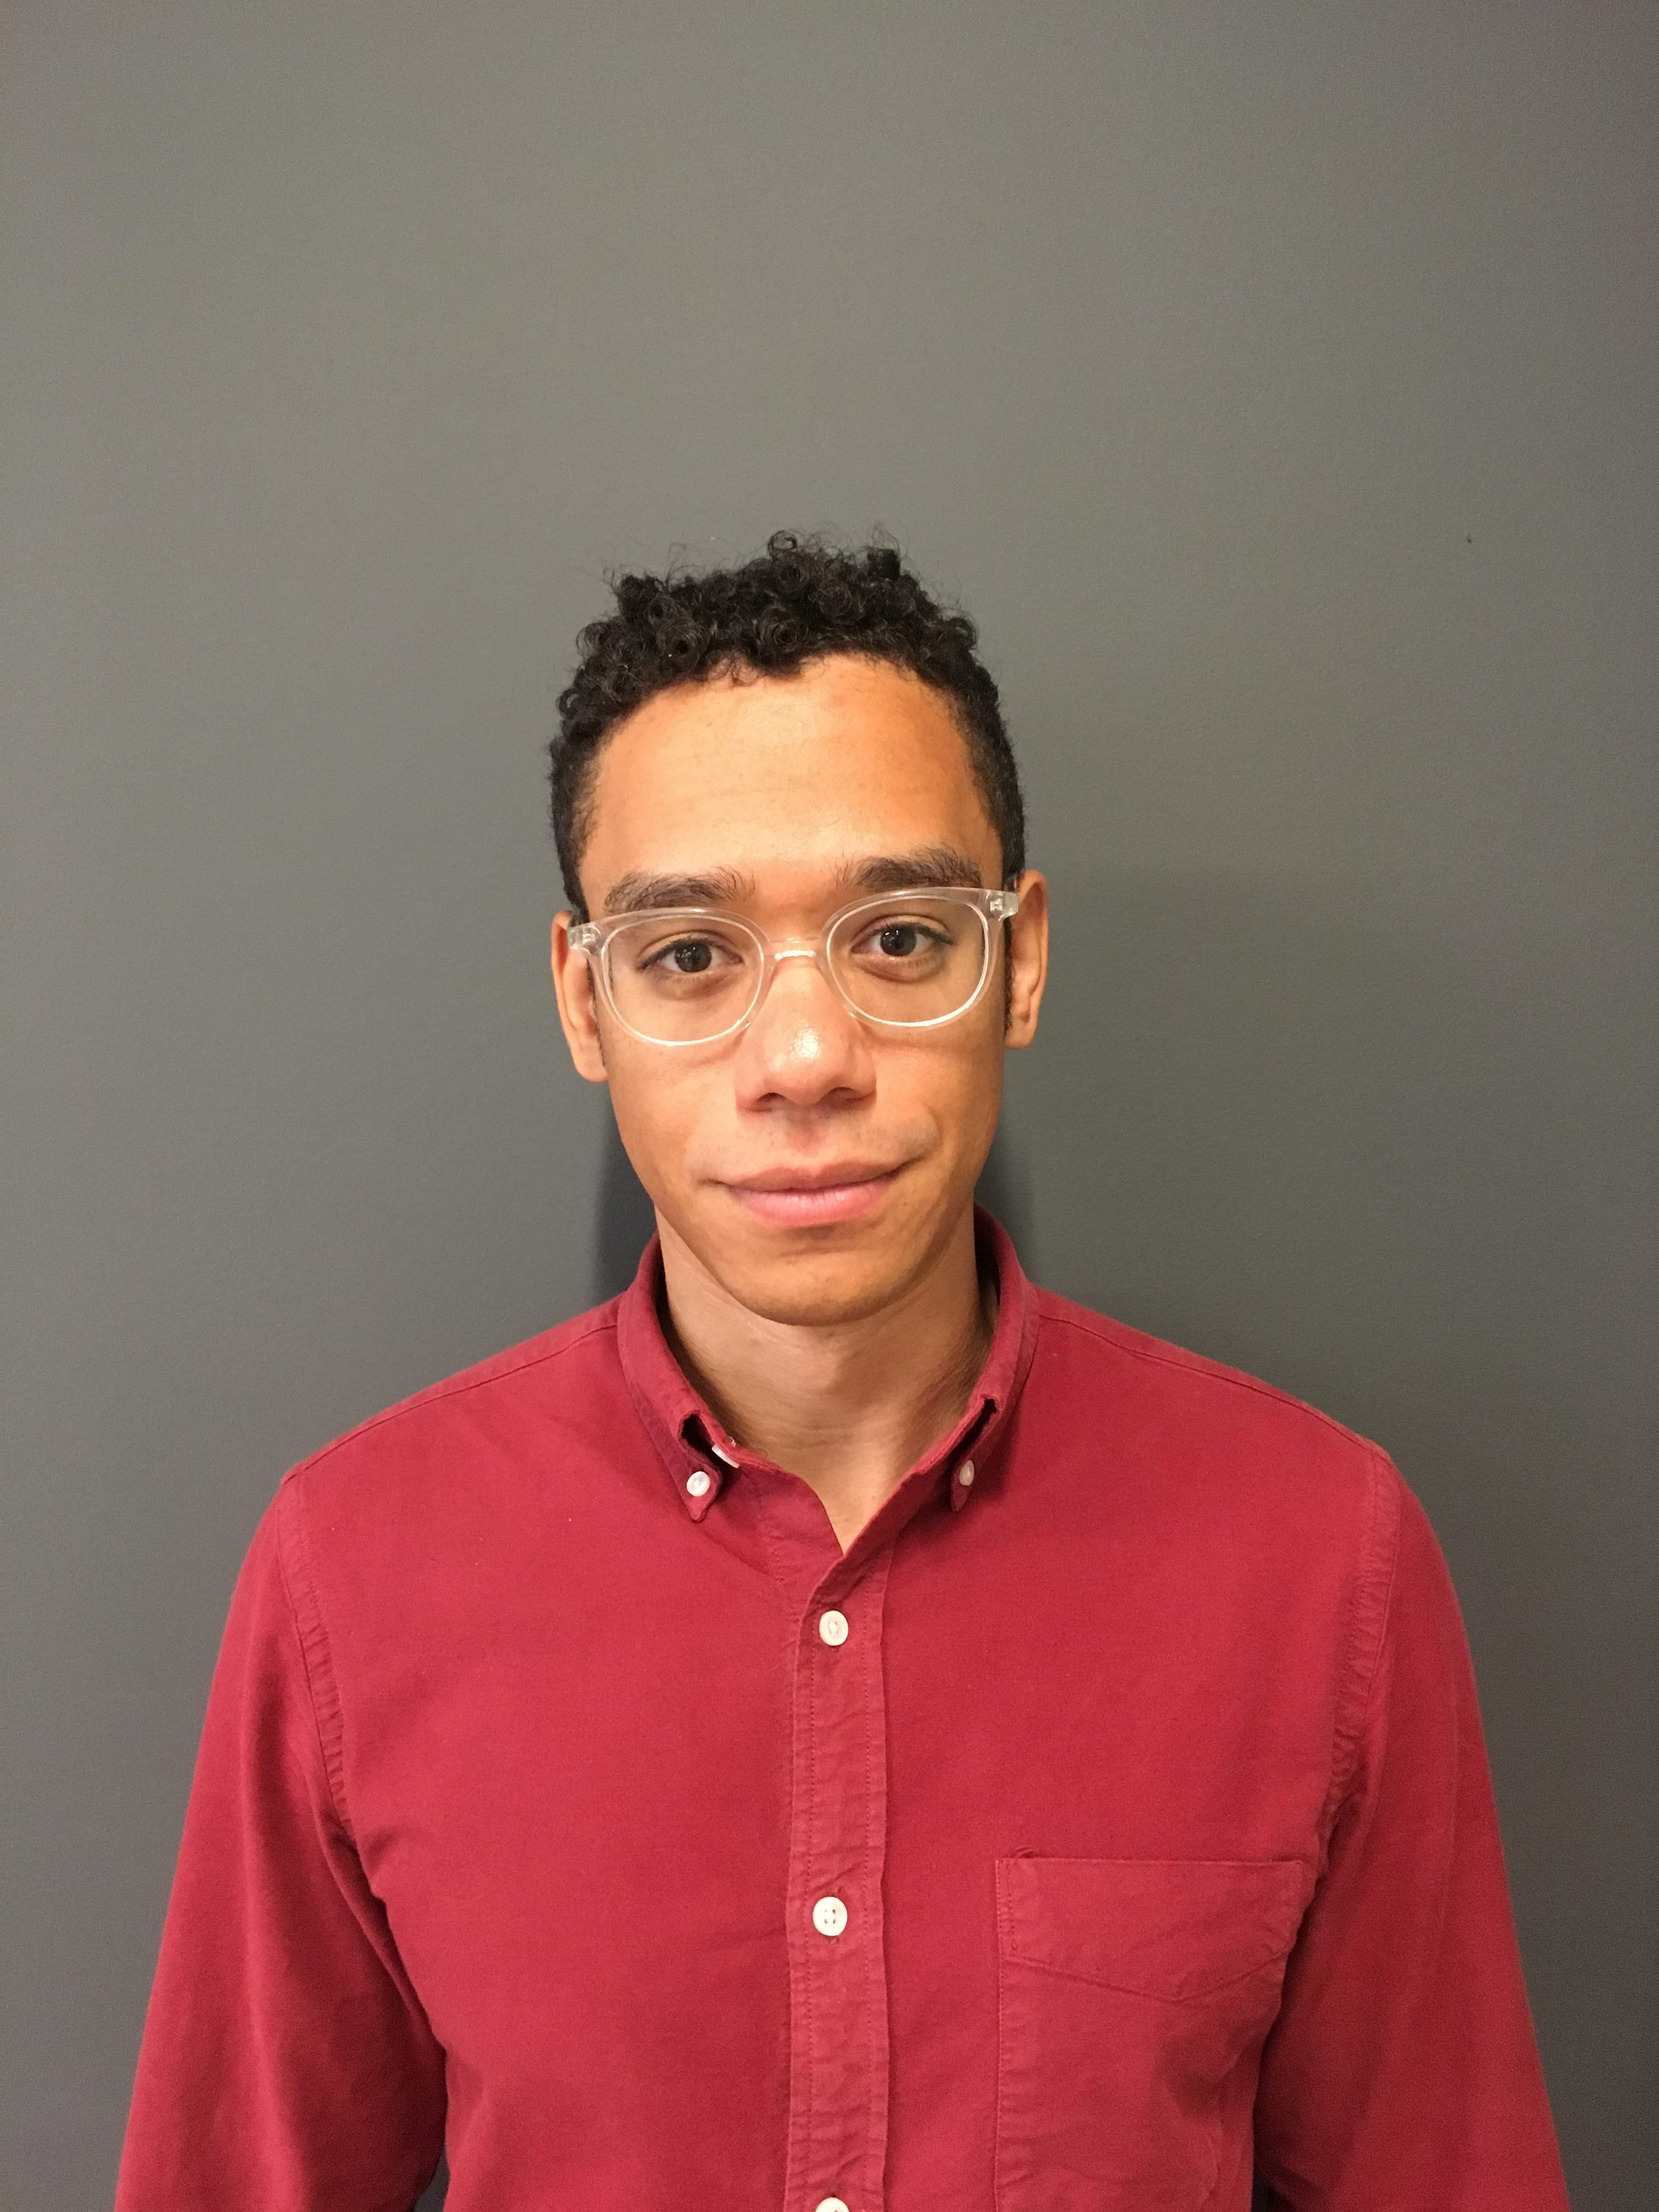 A photo of the writer Elliot Aguilar.